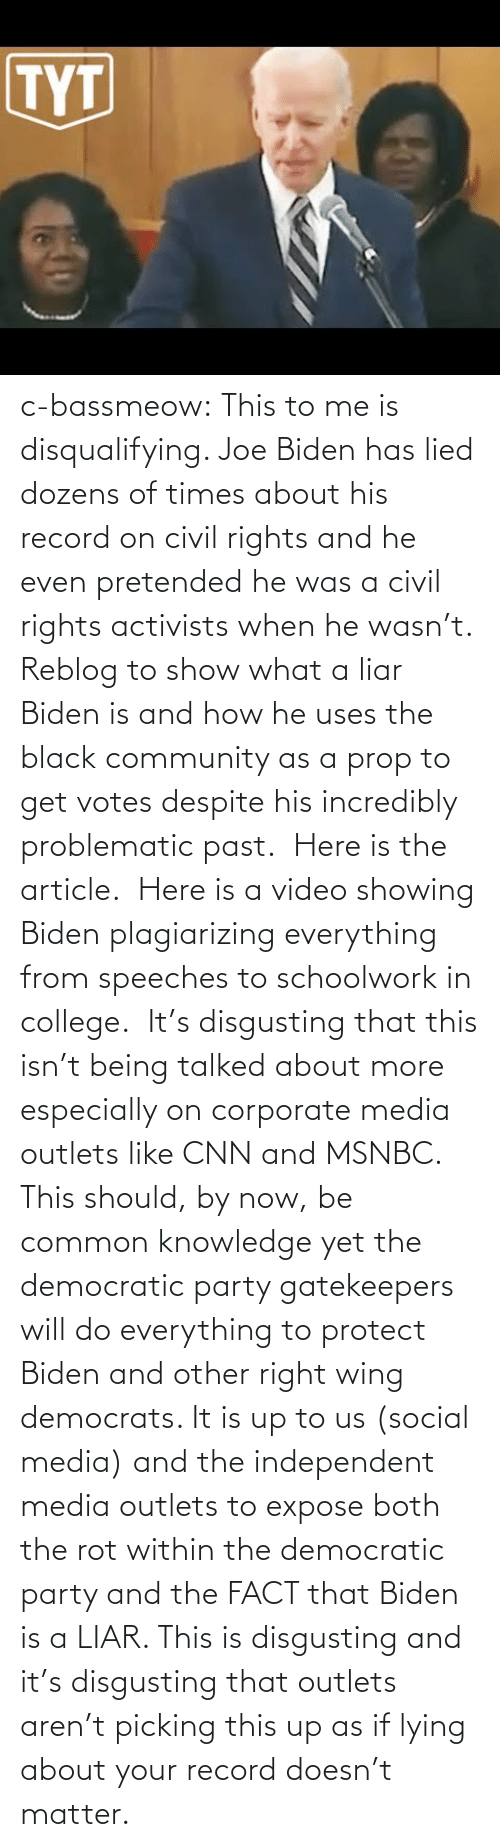 Incredibly: c-bassmeow: This to me is disqualifying. Joe Biden has lied dozens of times about his record on civil rights and he even pretended he was a civil rights activists when he wasn't. Reblog to show what a liar Biden is and how he uses the black community as a prop to get votes despite his incredibly problematic past.   Here is the article.   Here is a video showing Biden plagiarizing everything from speeches to schoolwork in college.   It's disgusting that this isn't being talked about more especially on corporate media outlets like CNN and MSNBC. This should, by now, be common knowledge yet the democratic party gatekeepers will do everything to protect Biden and other right wing democrats. It is up to us (social media) and the independent media outlets to expose both the rot within the democratic party and the FACT that Biden is a LIAR. This is disgusting and it's disgusting that outlets aren't picking this up as if lying about your record doesn't matter.